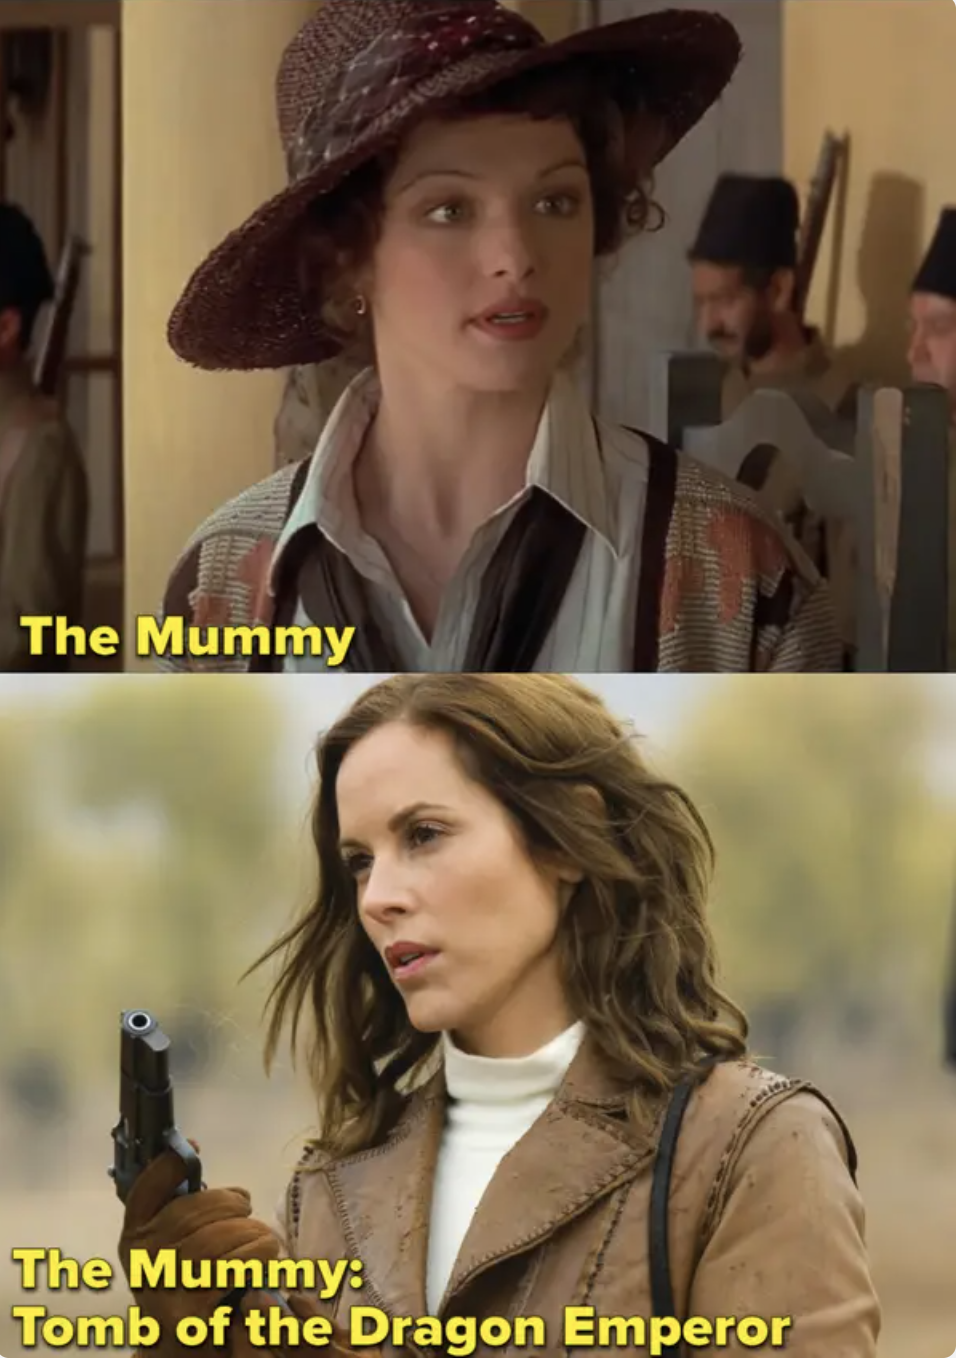 Weisz in the mummy and Bello in the last film